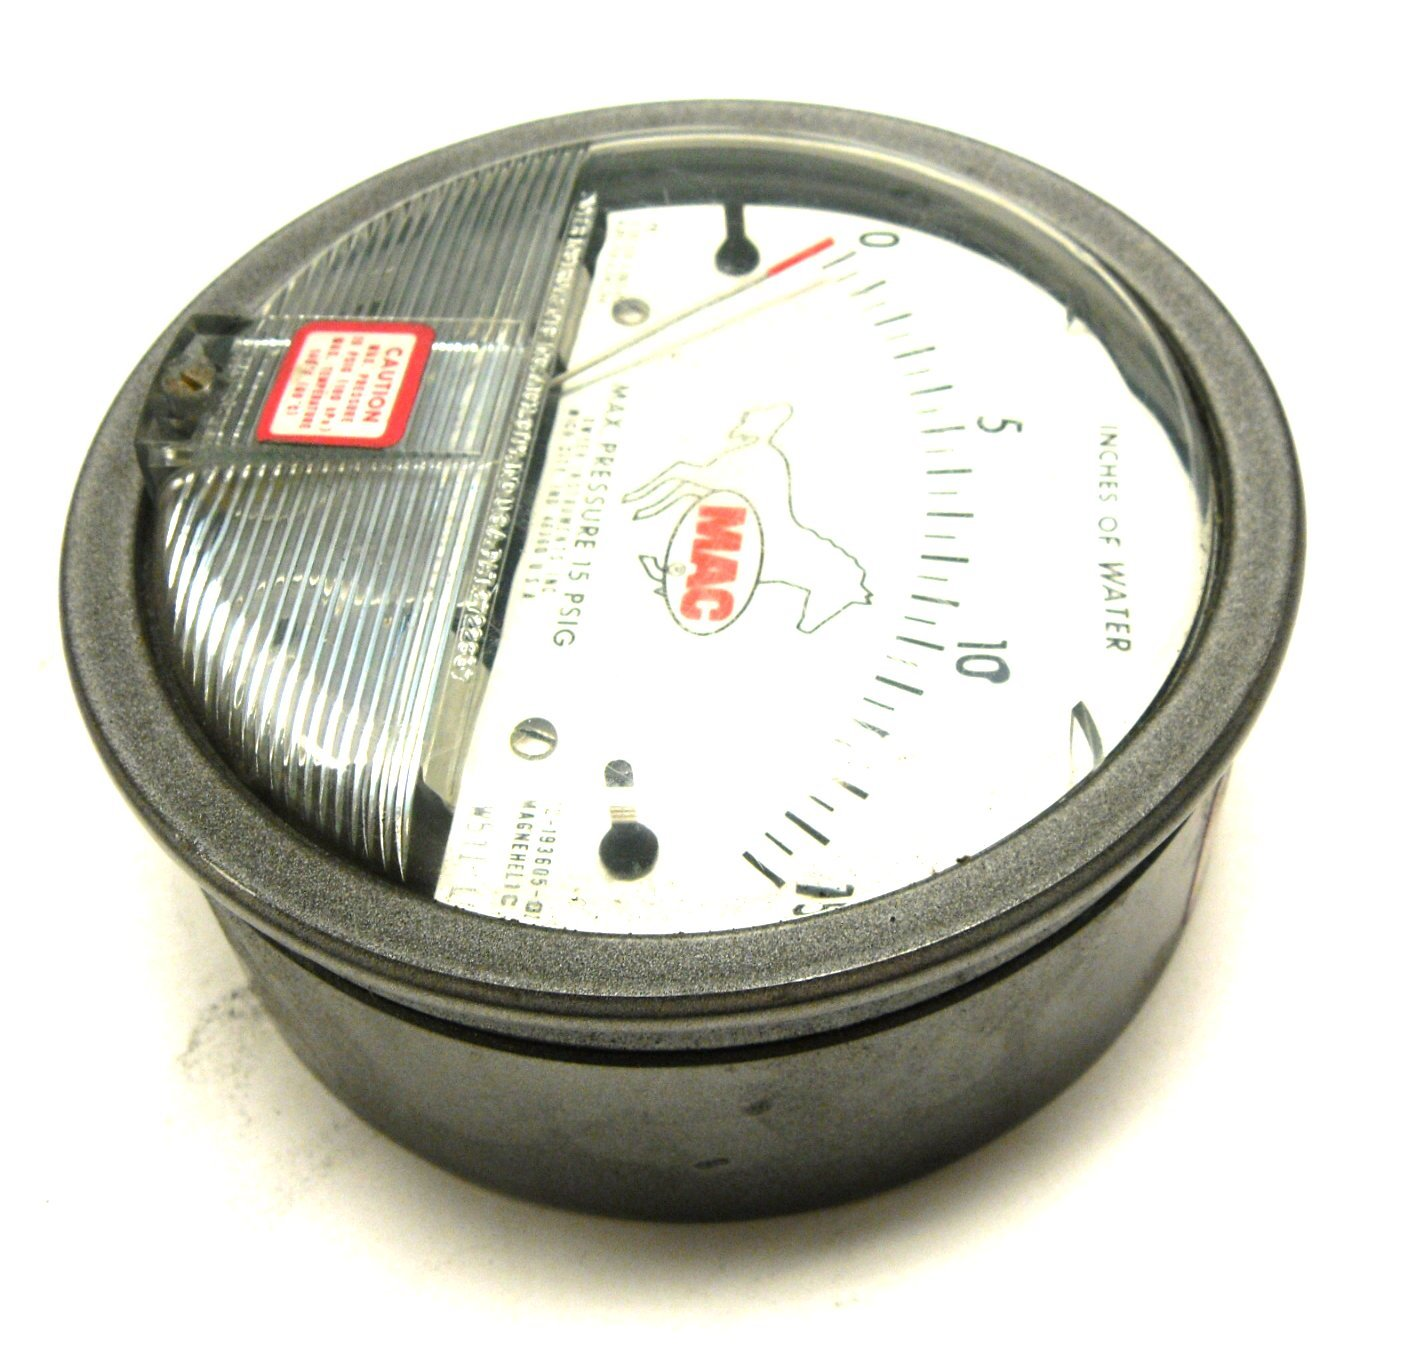 NEW DWYER 193605-00 GAUGE 0-15 INCHES OF WATER MAC 12-193605 ...